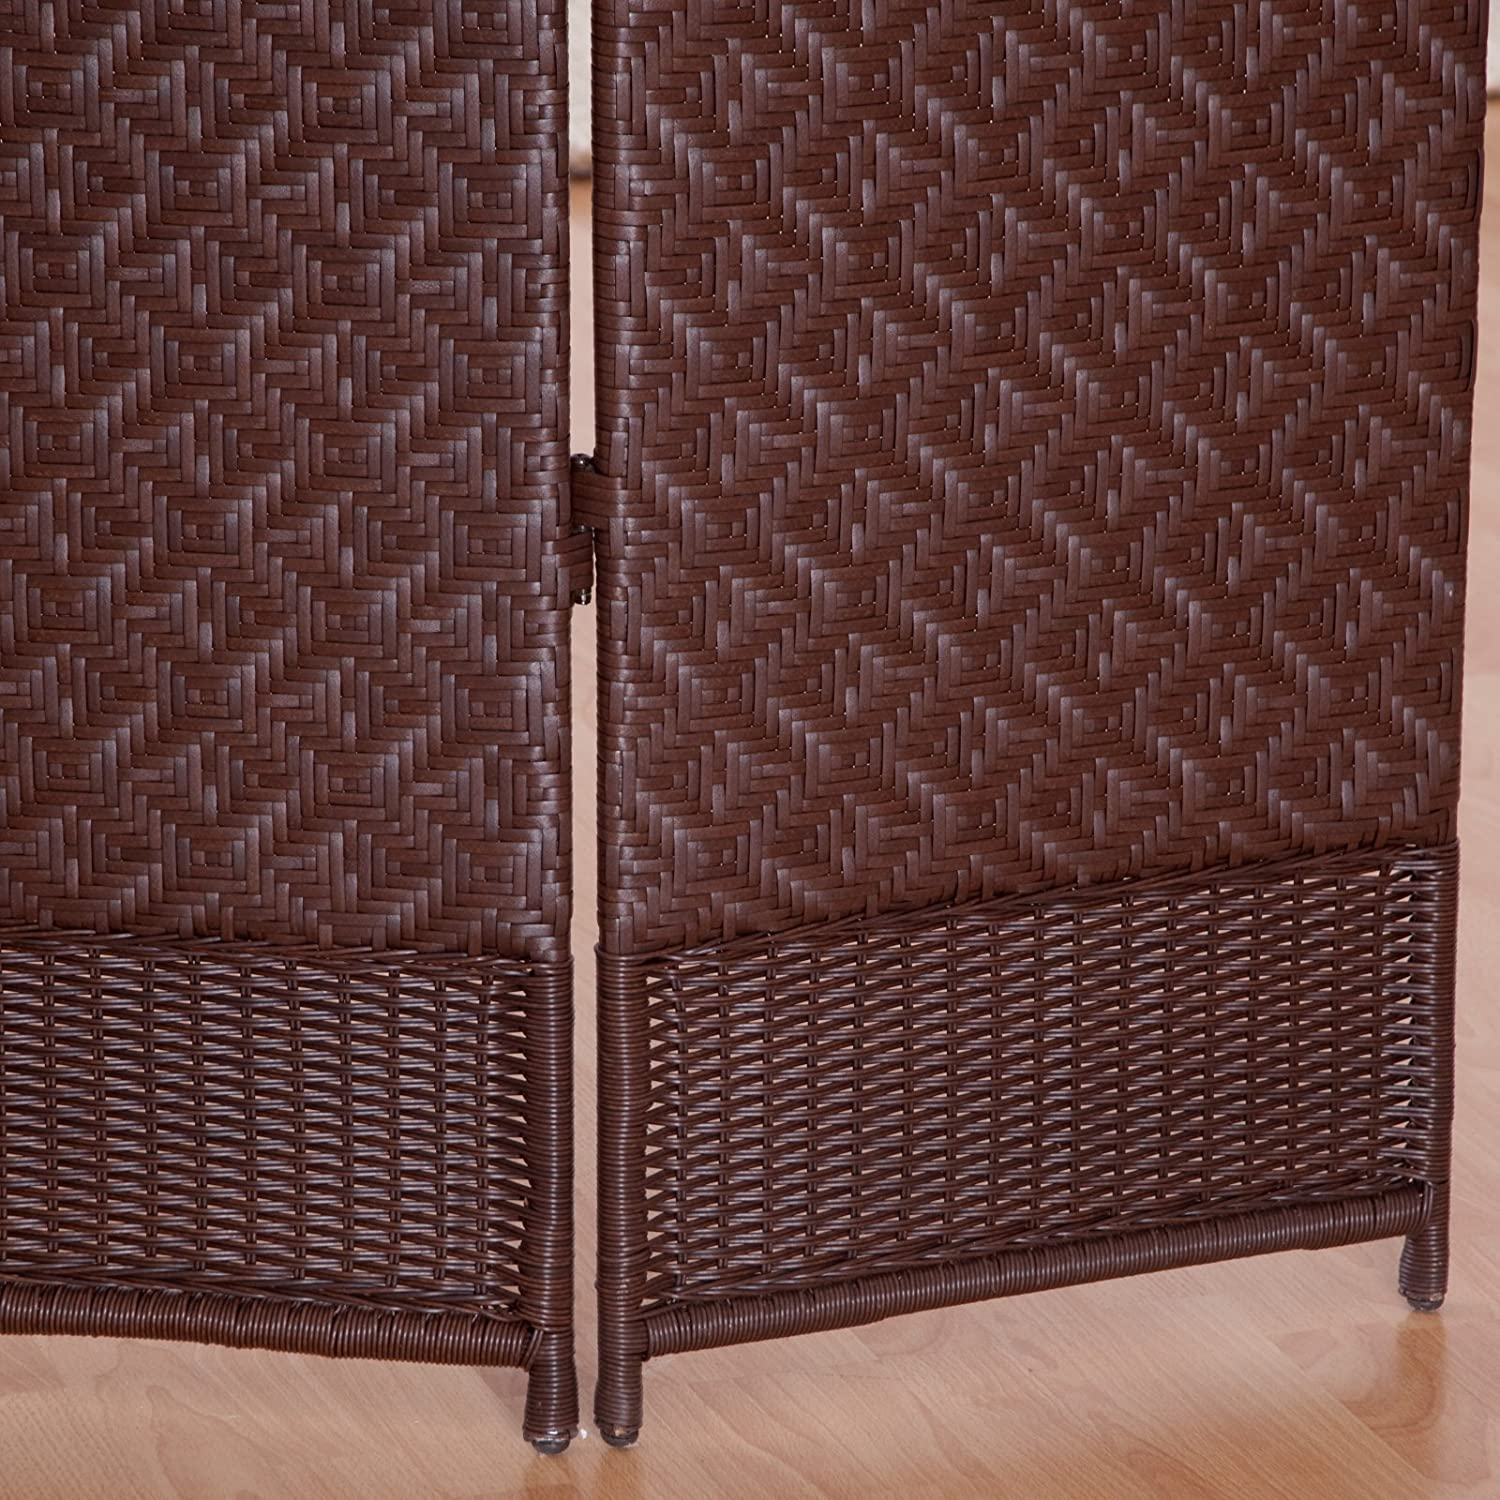 Amazon.com: Outdoor/Indoor Woven Resin 4 Panel Room Divider: Kitchen & Dining